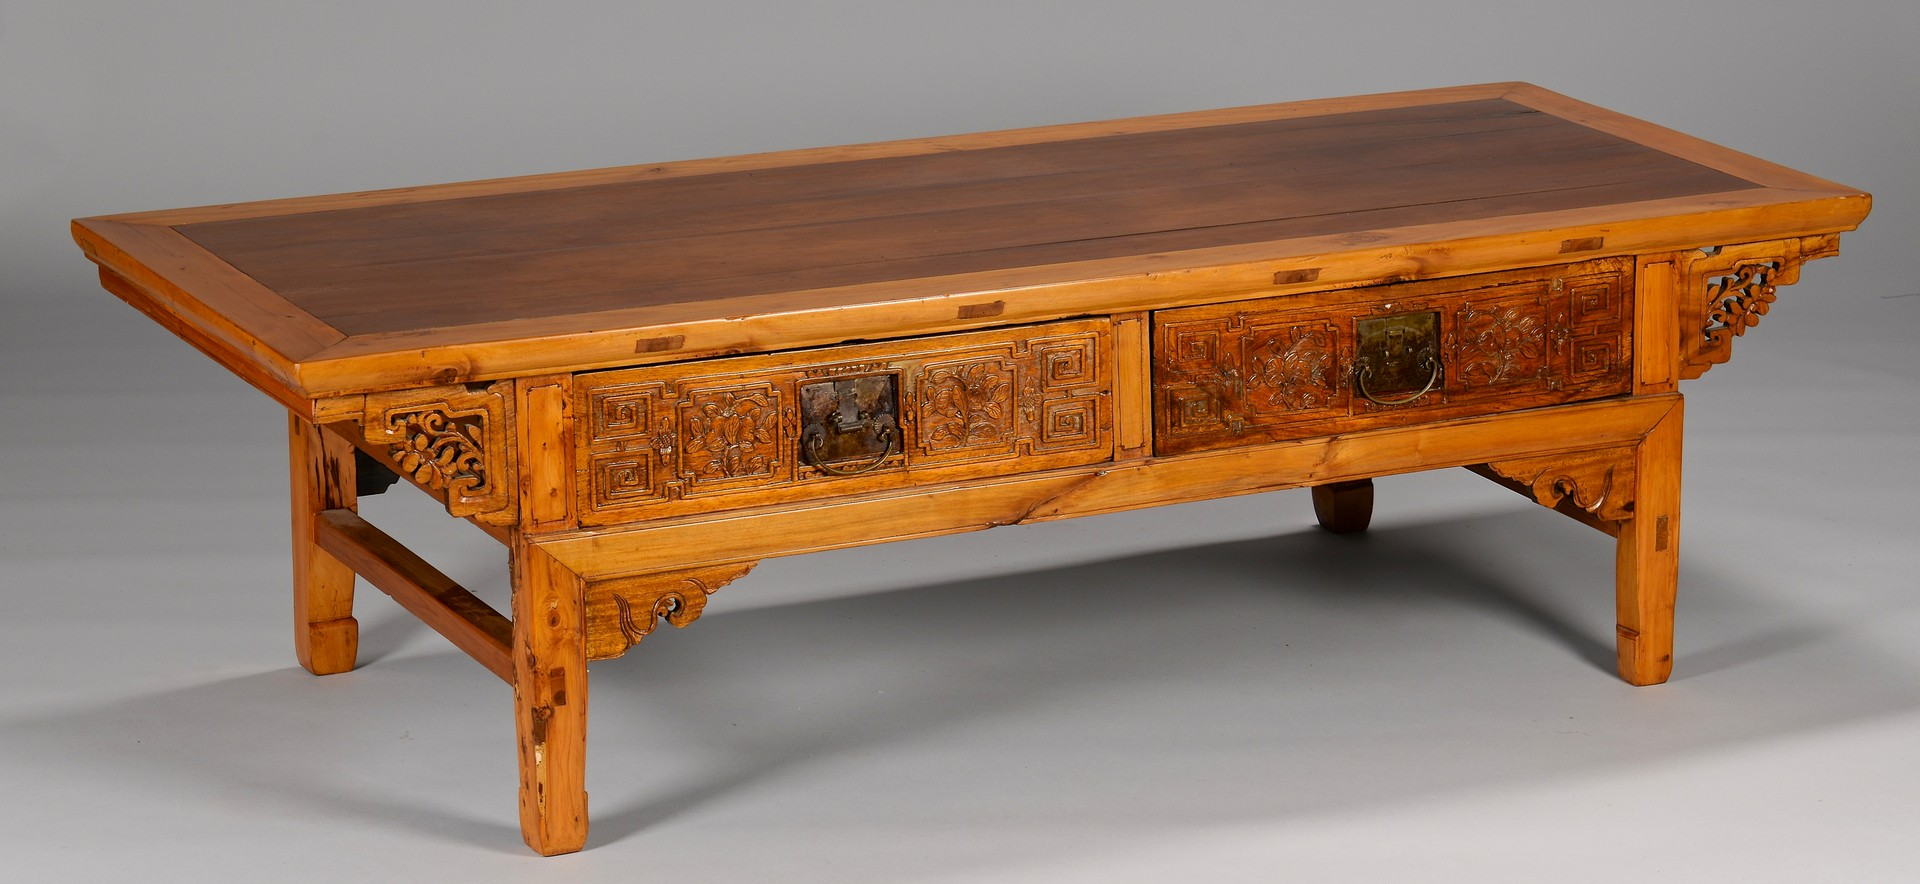 Lot 3594211: Carved Tibetan Low Table